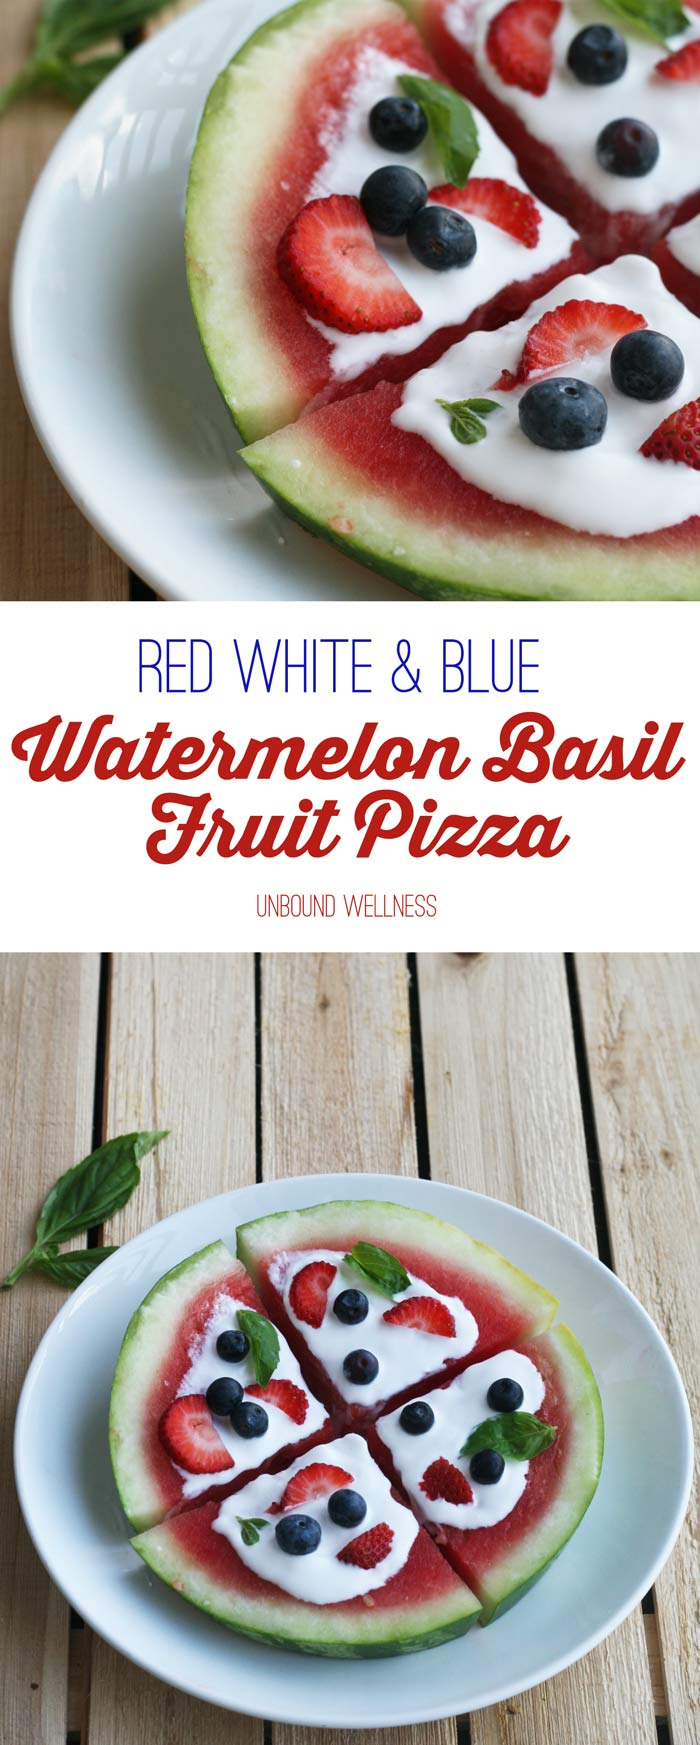 Red White & Blue Watermelon Basil Fruit Pizza (AIP & Vegan)